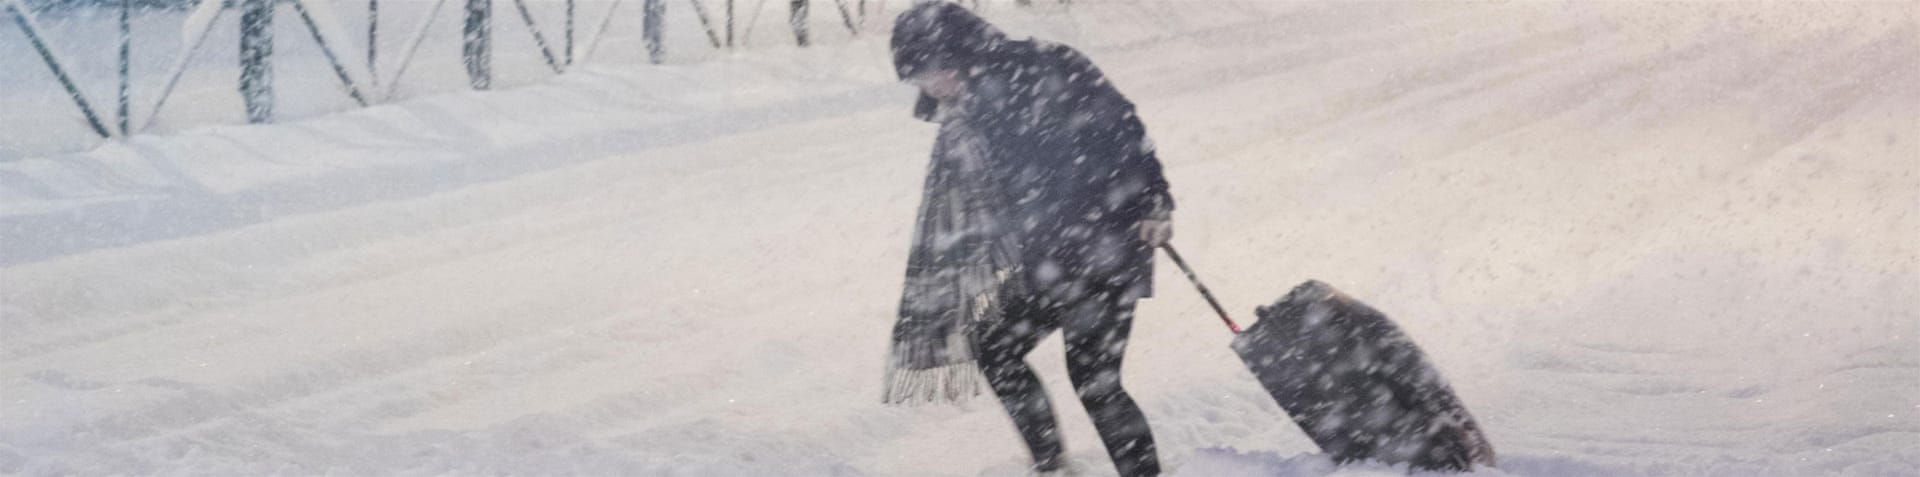 51cm of snow in 24 hours in Iceland's capital, Reykjavik [Gunnar Freyr]